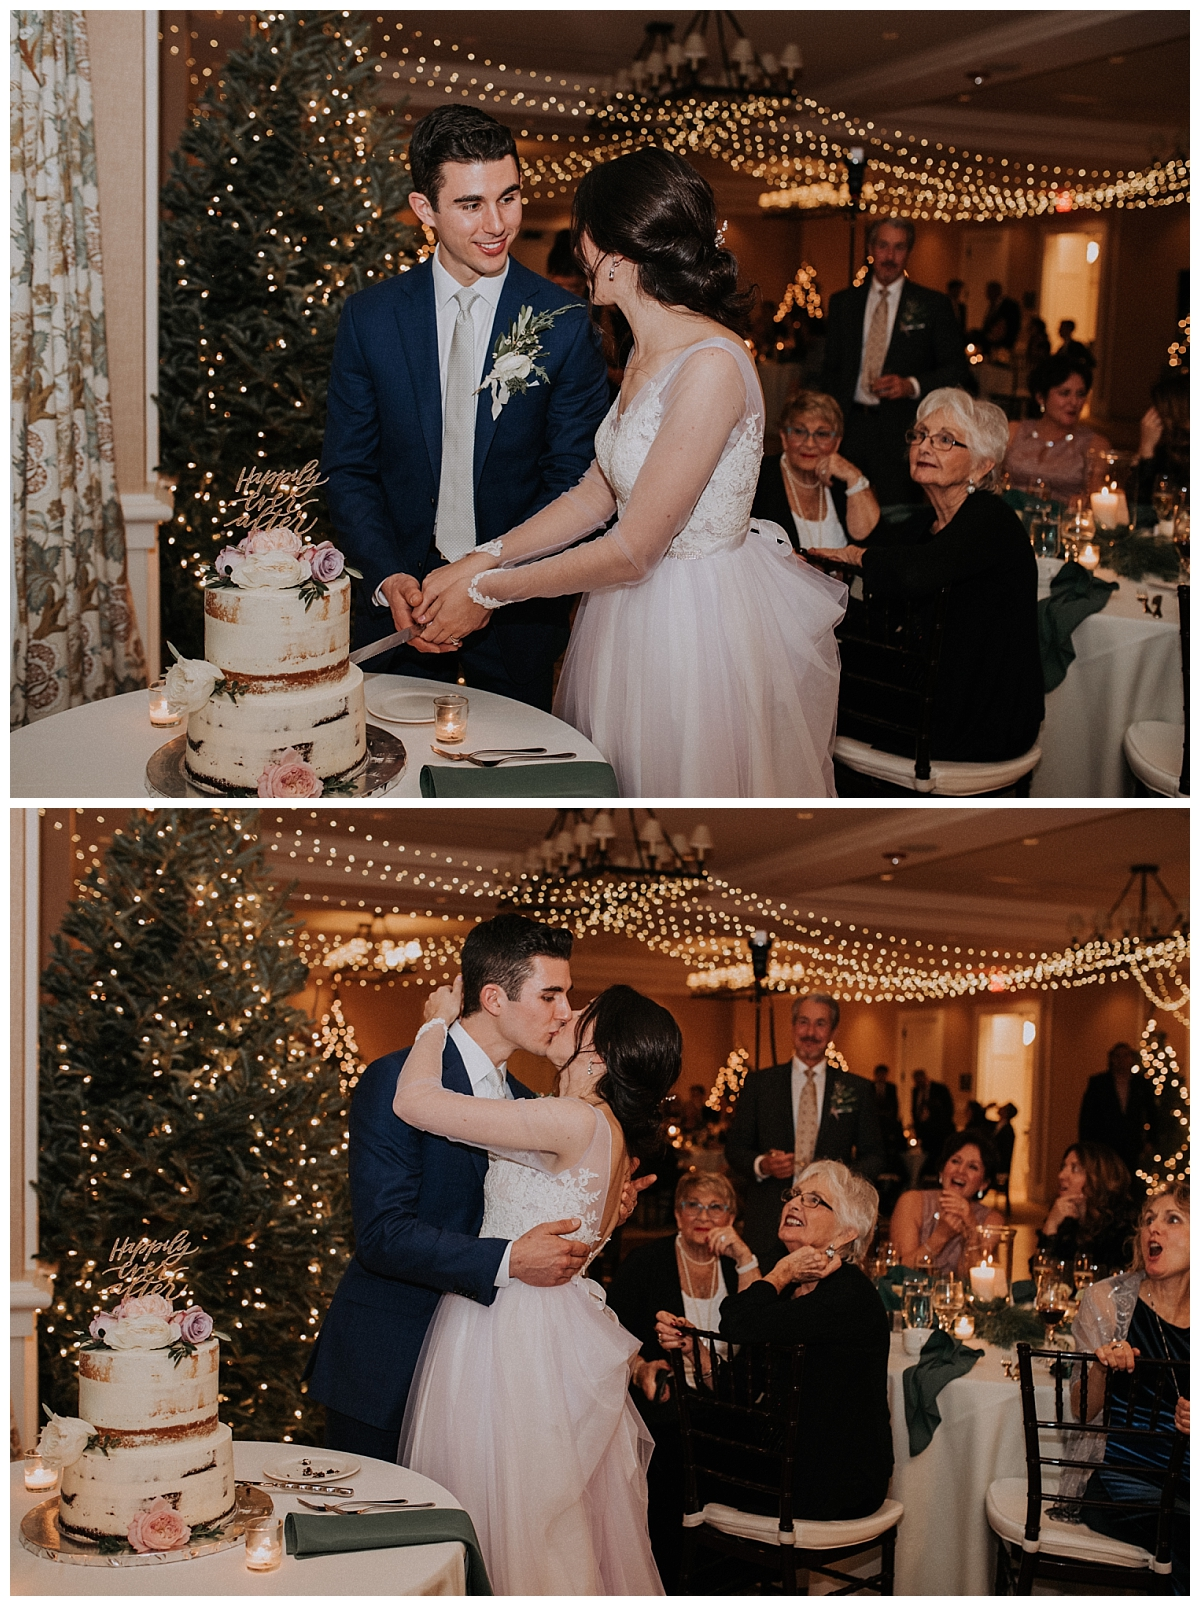 Christmas Wedding In Vermont Christmas Vermont Wedding In 2020 Vermont Wedding Photographers Vermont Wedding Vermont Wedding Venues